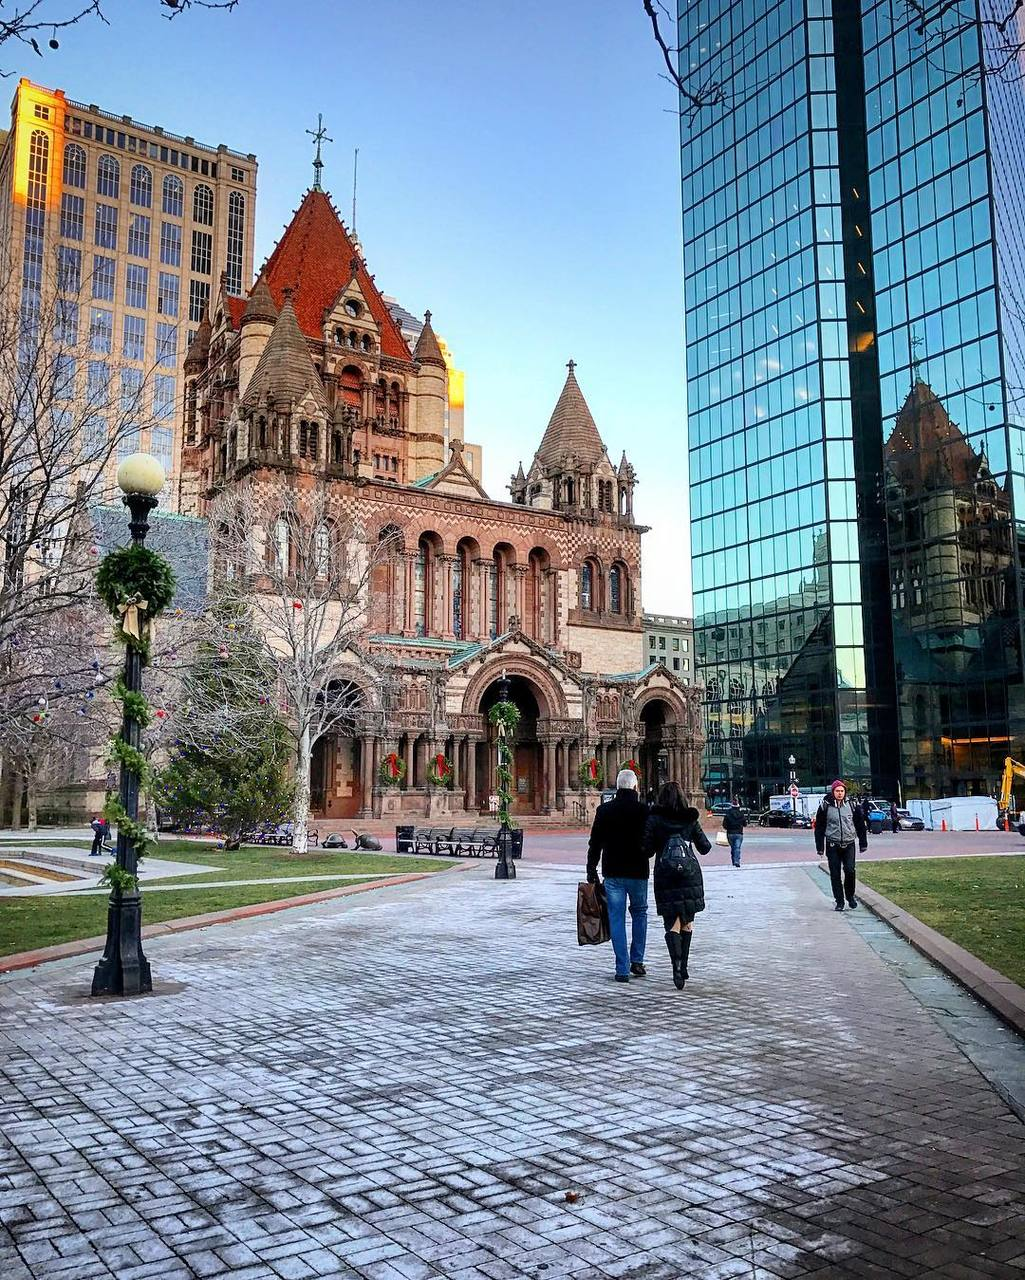 81 things to do in Boston this weekend